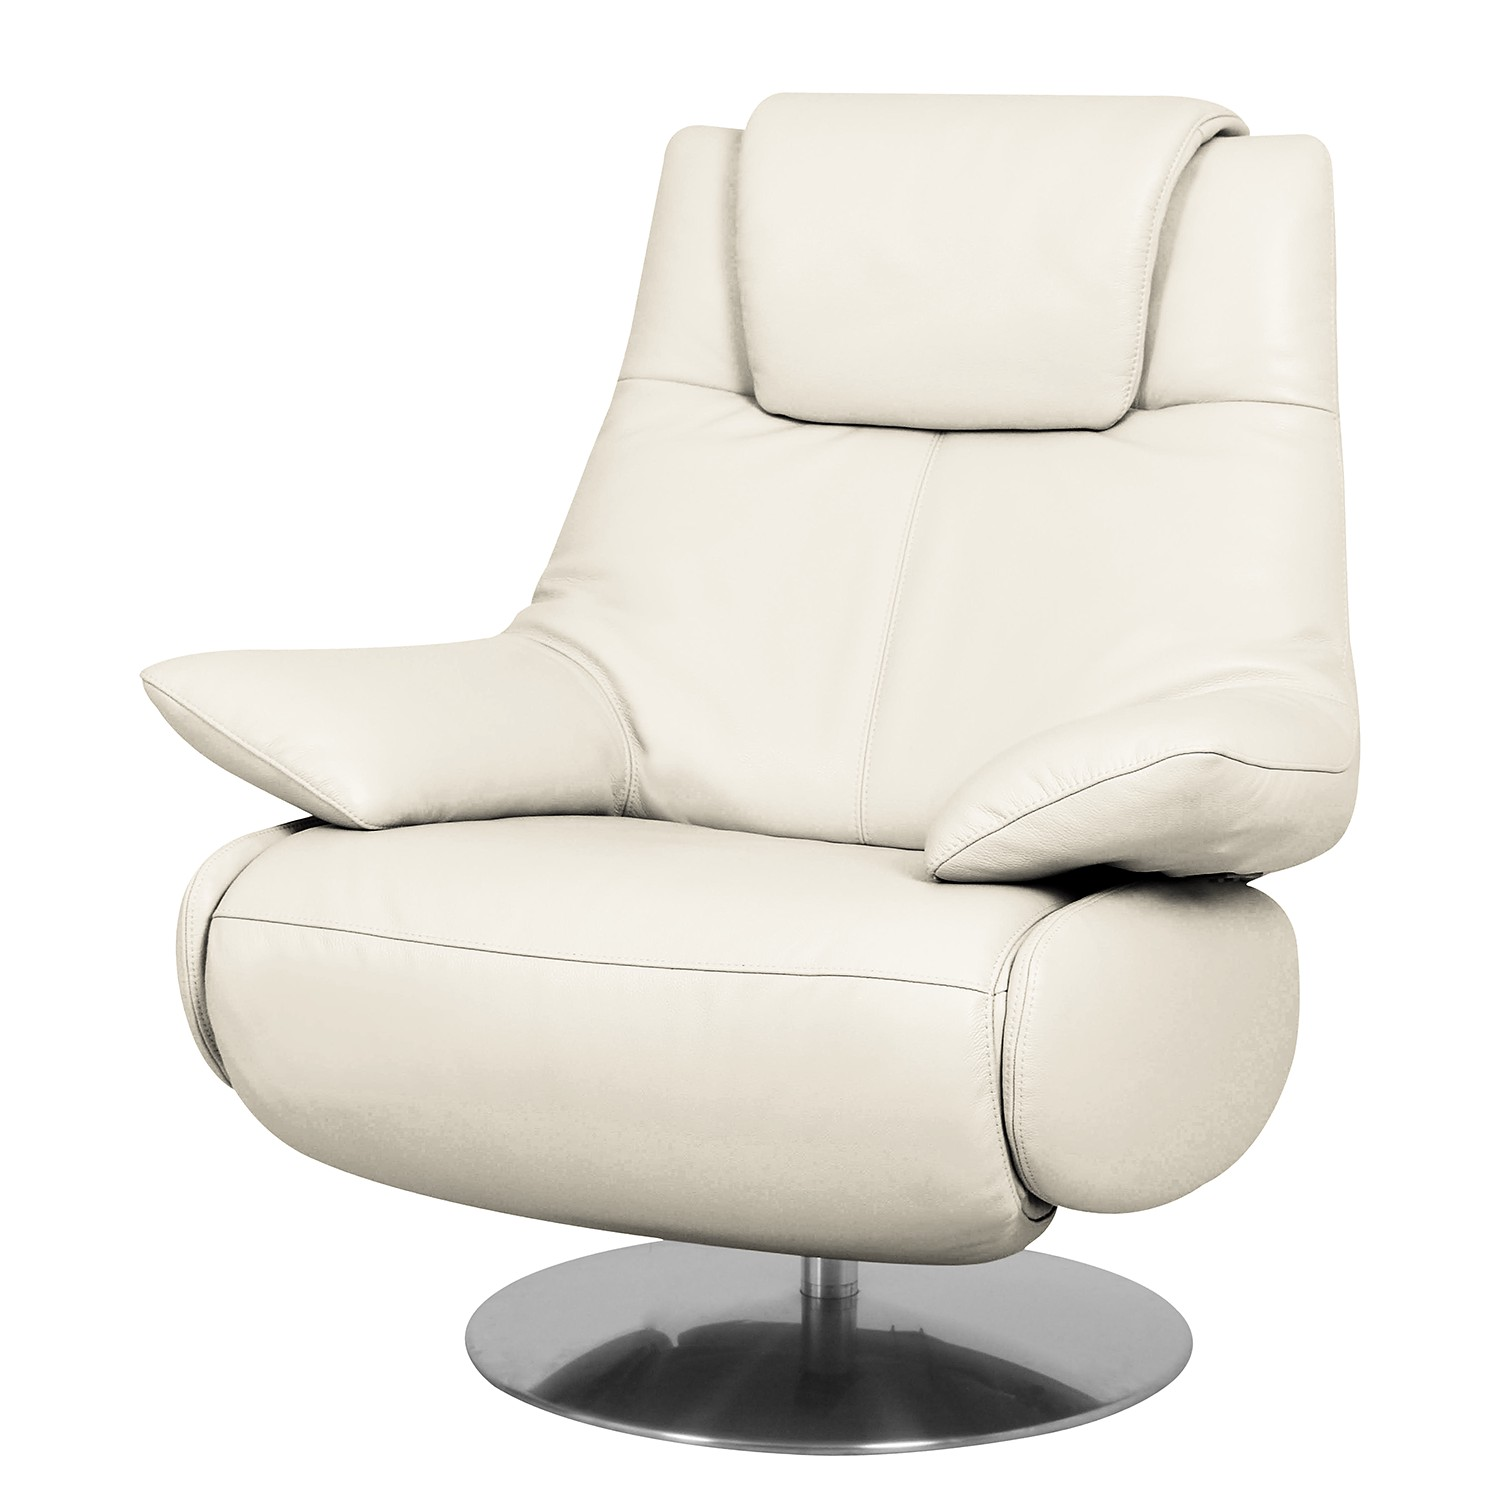 Fauteuil relax Sarchi